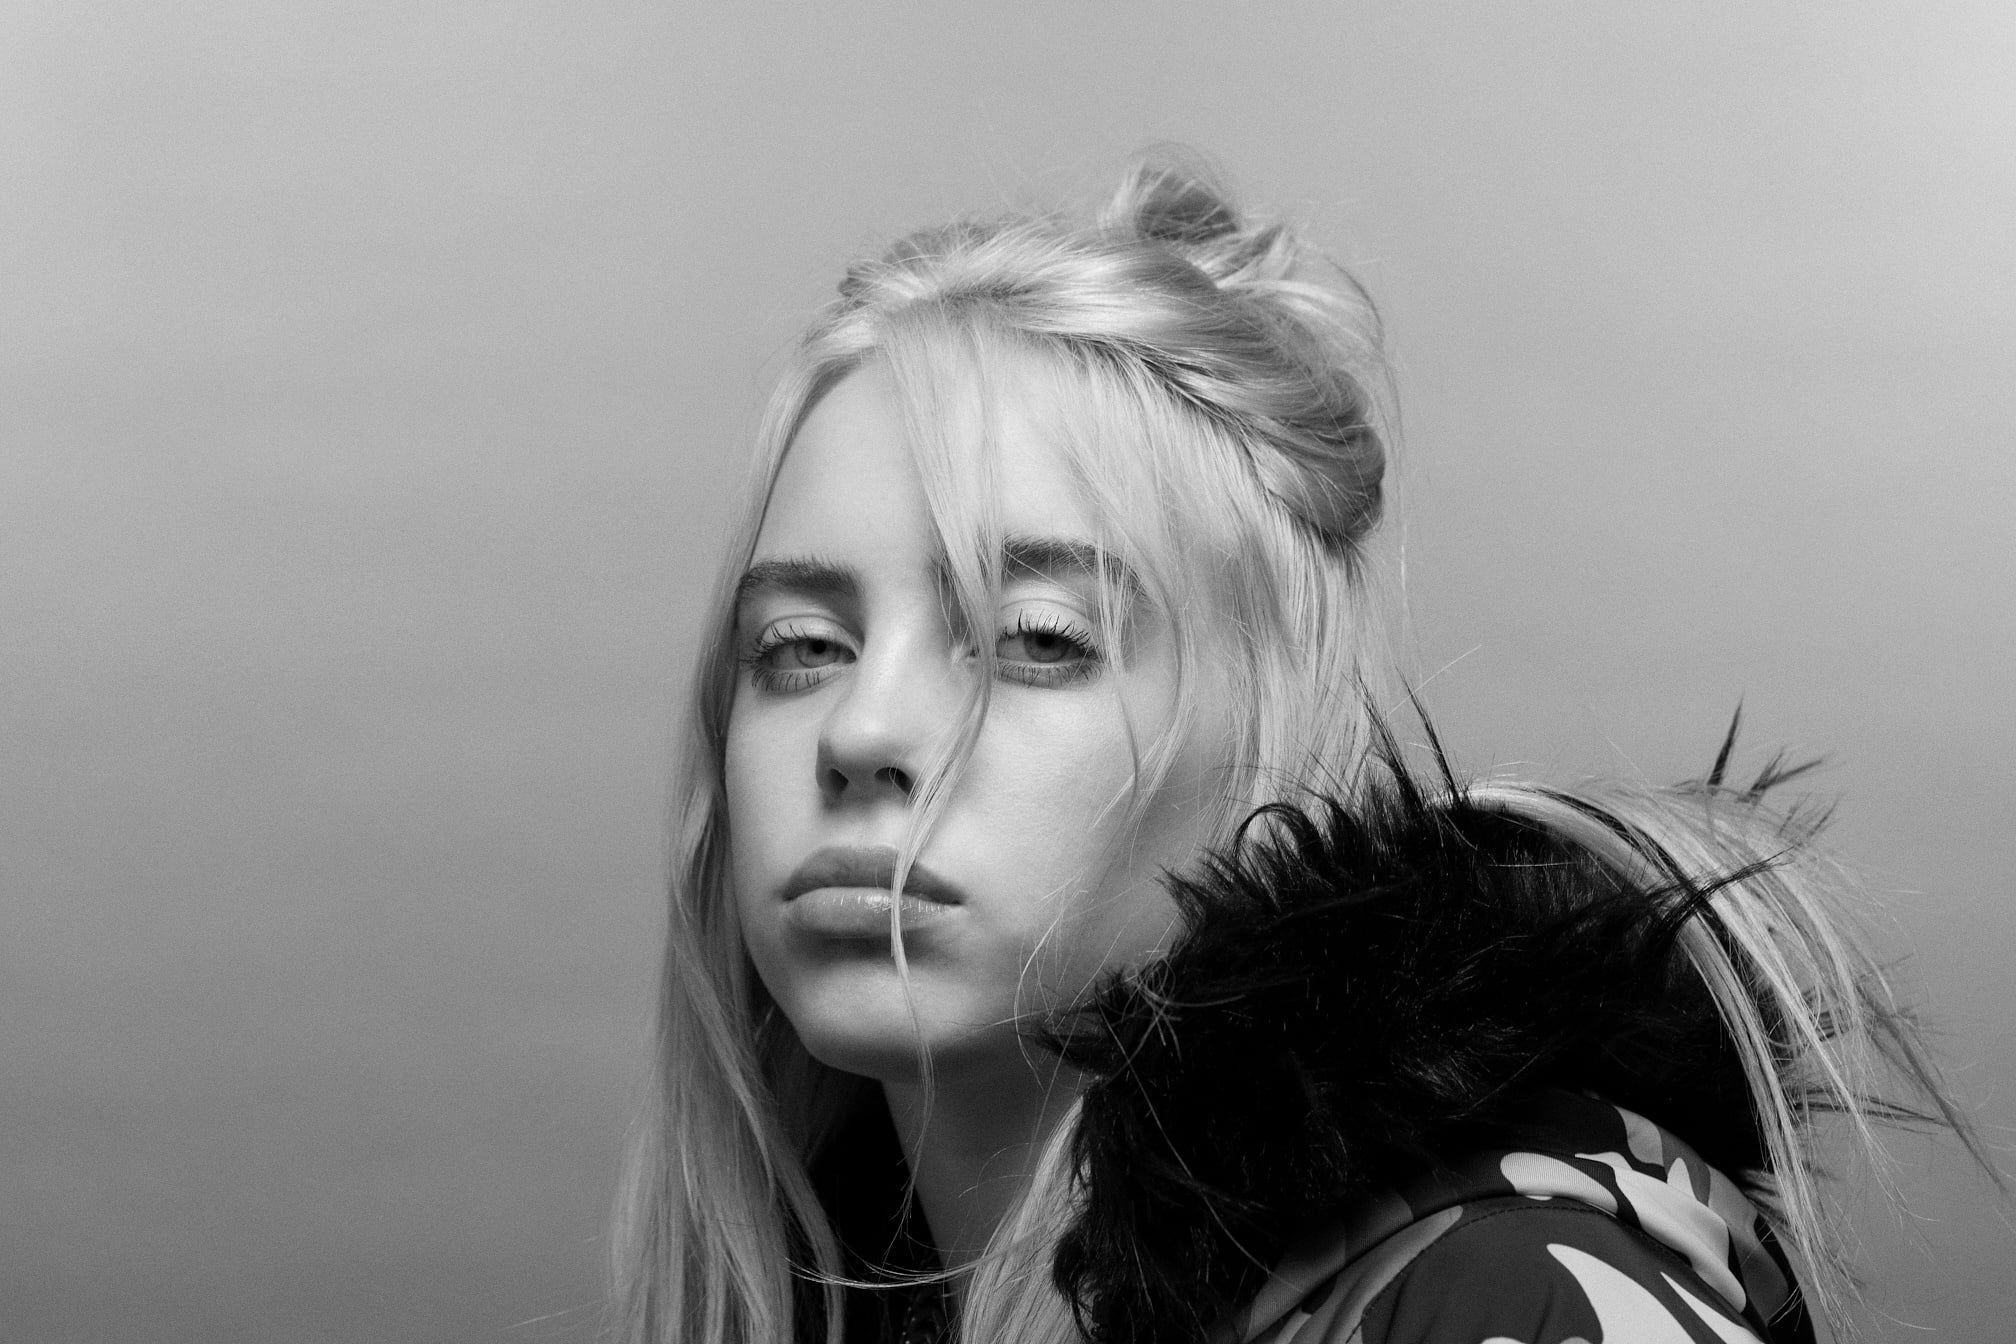 Sci Fi Billie Eilish American Monochrome Singer 1080p Wallpaper Hdwallpaper Desktop In 2020 Billie Eilish Billie Monochrome